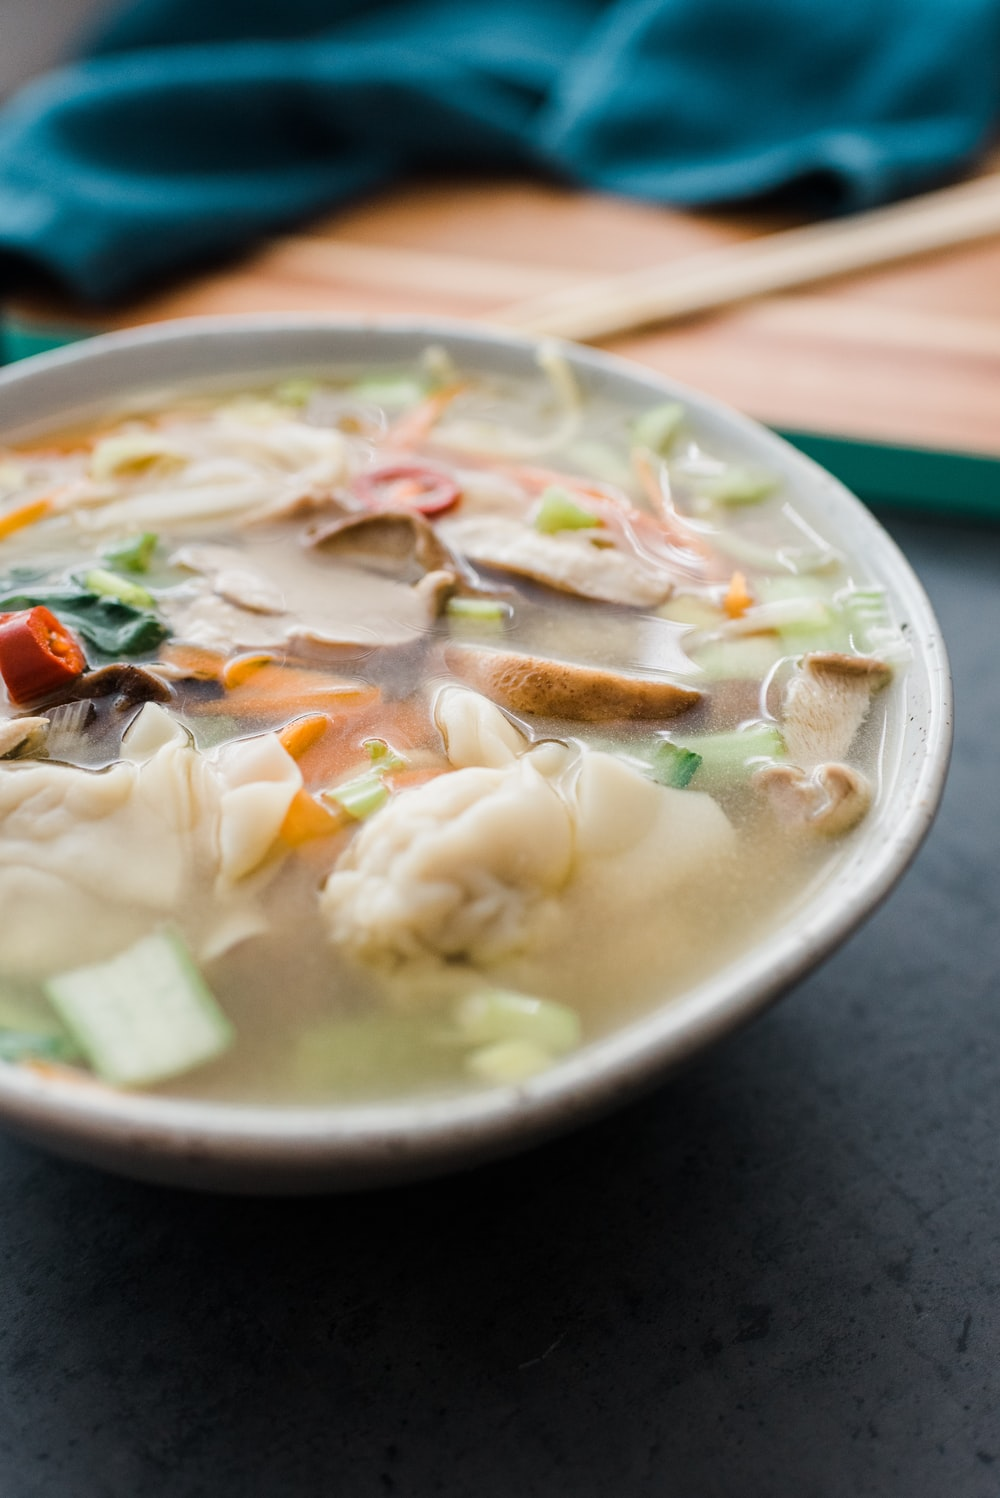 soup with meat and vegetables in white ceramic bowl